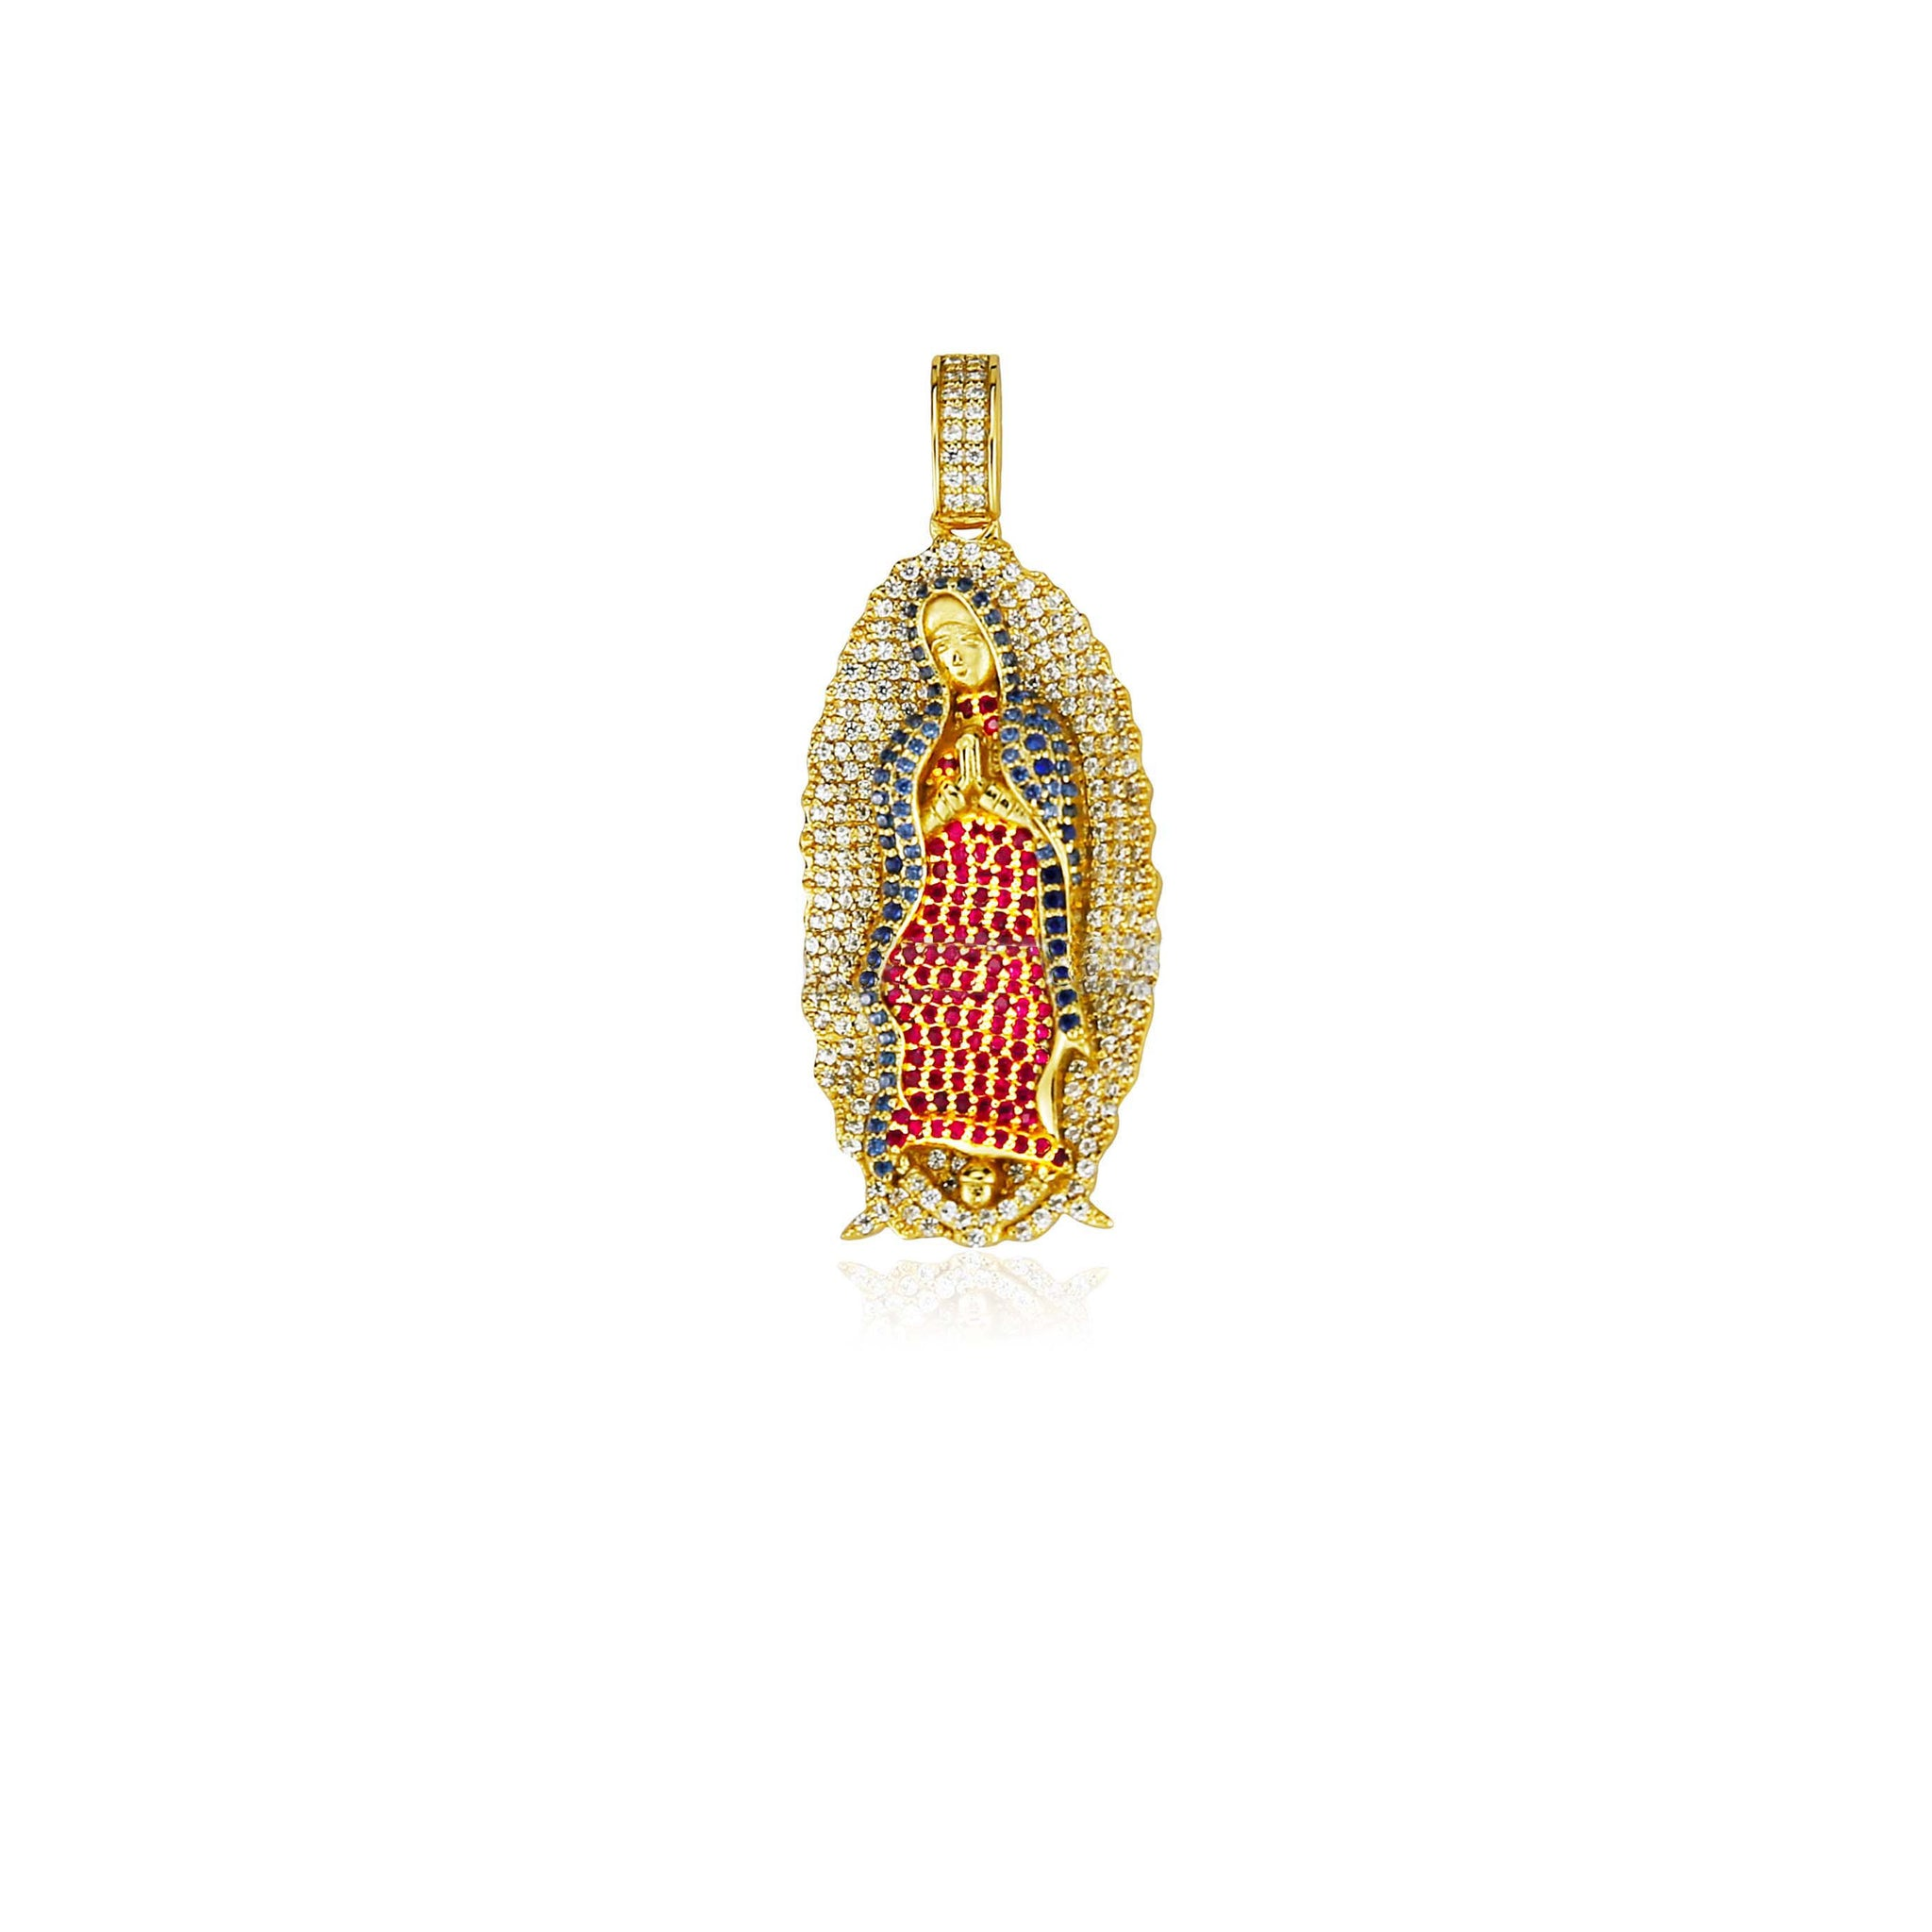 Lady of Guadalupe virgin Mary pendant & necklace chain multi colored